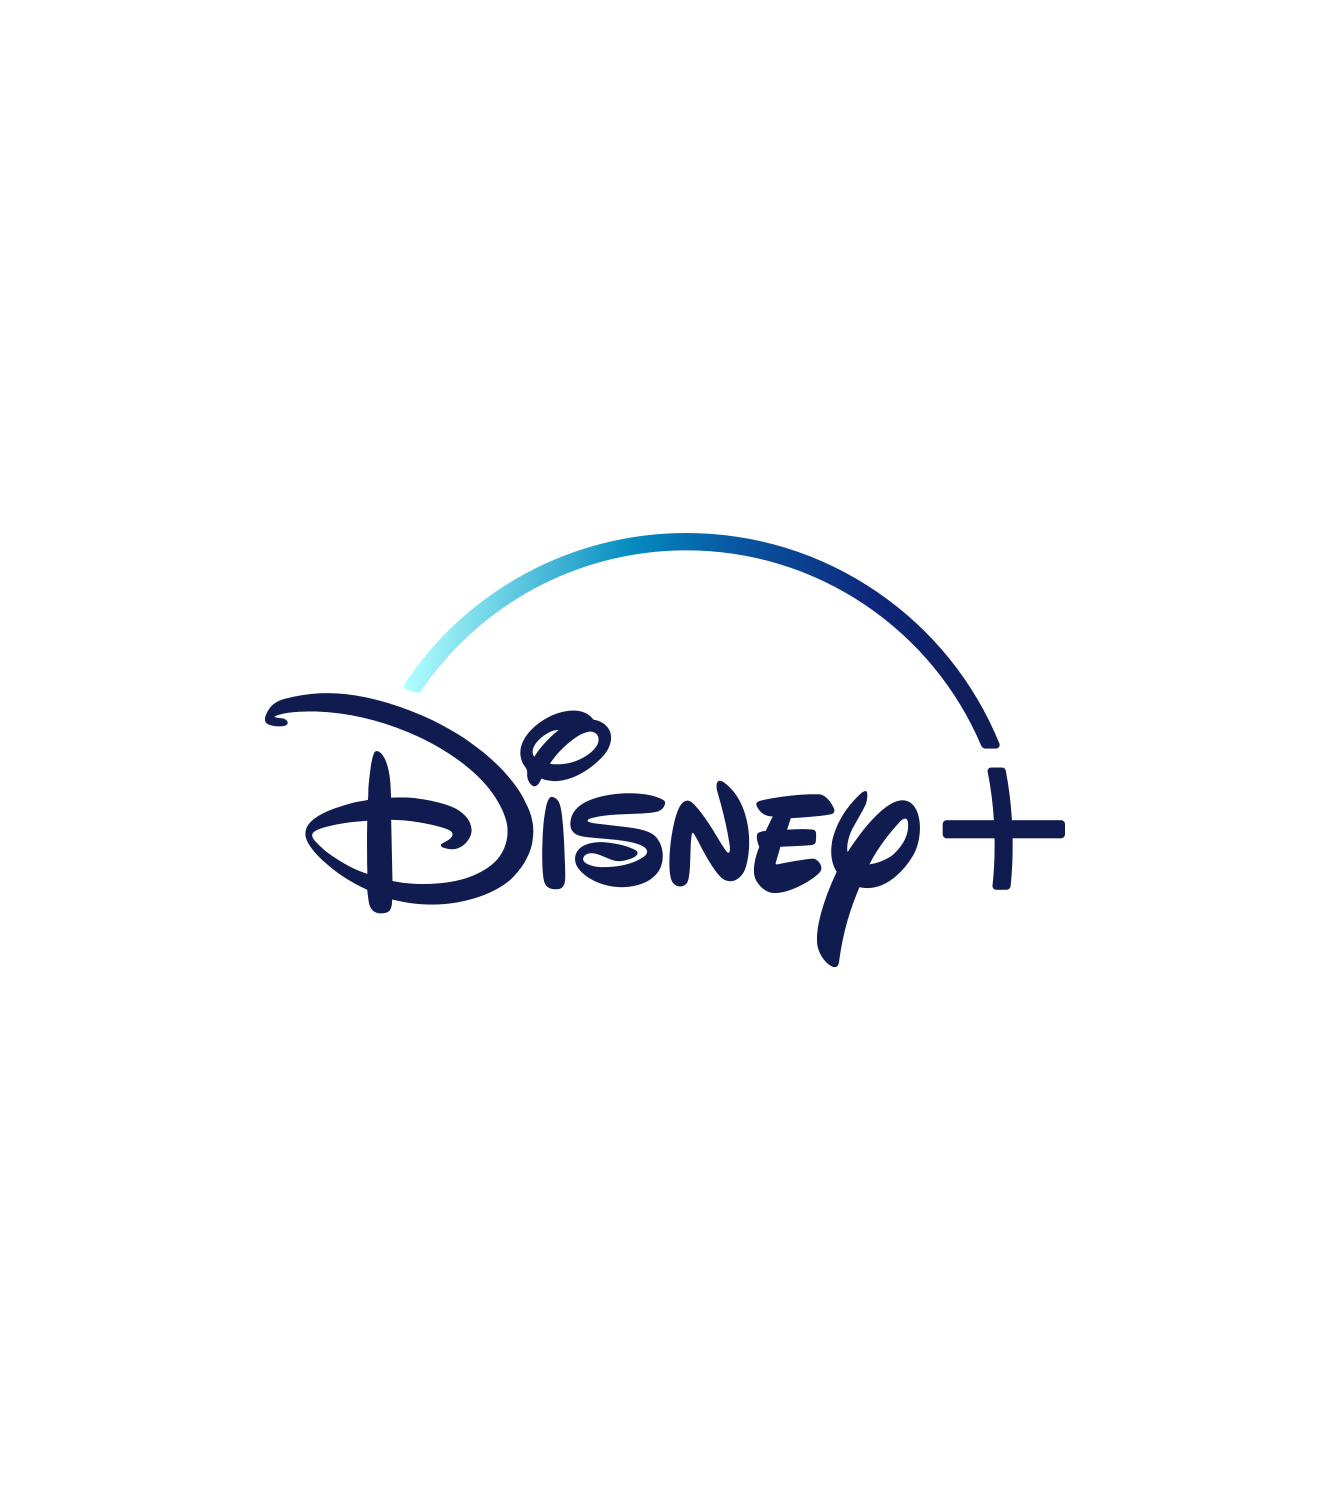 Disney+ To Release New Content In May 2021